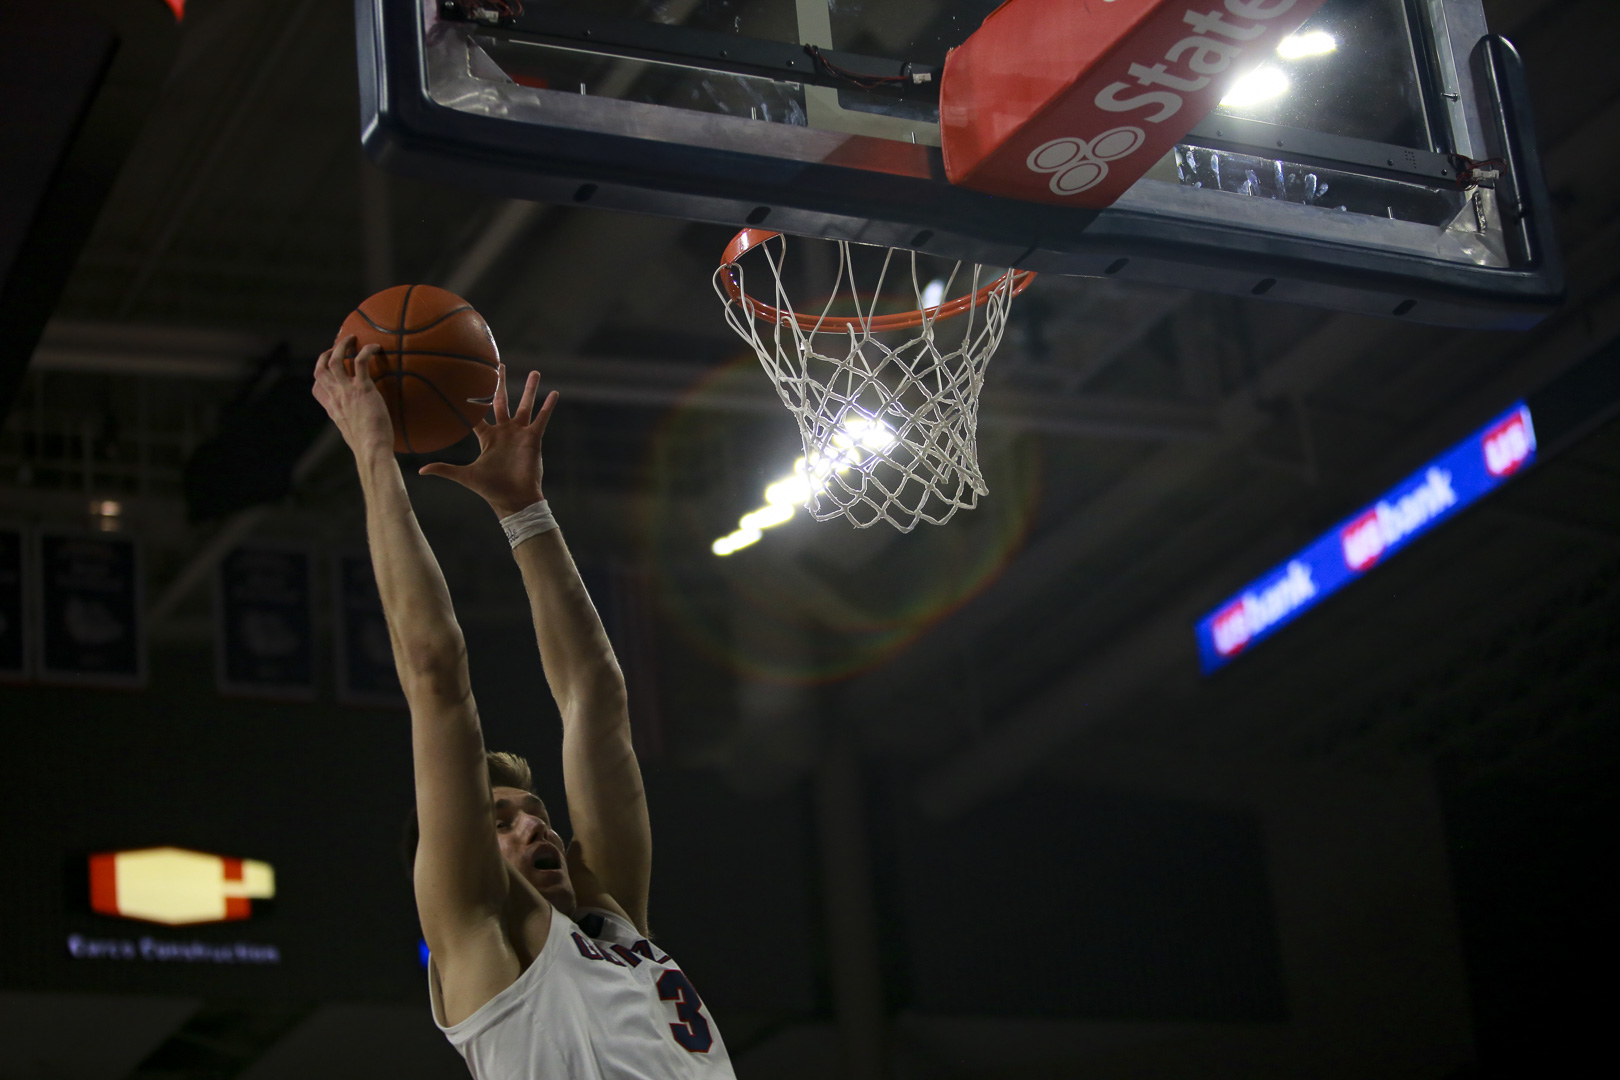 Zags stay at No. 2 in this week's AP Top 25, BYU moves to No. 23 - KXLY